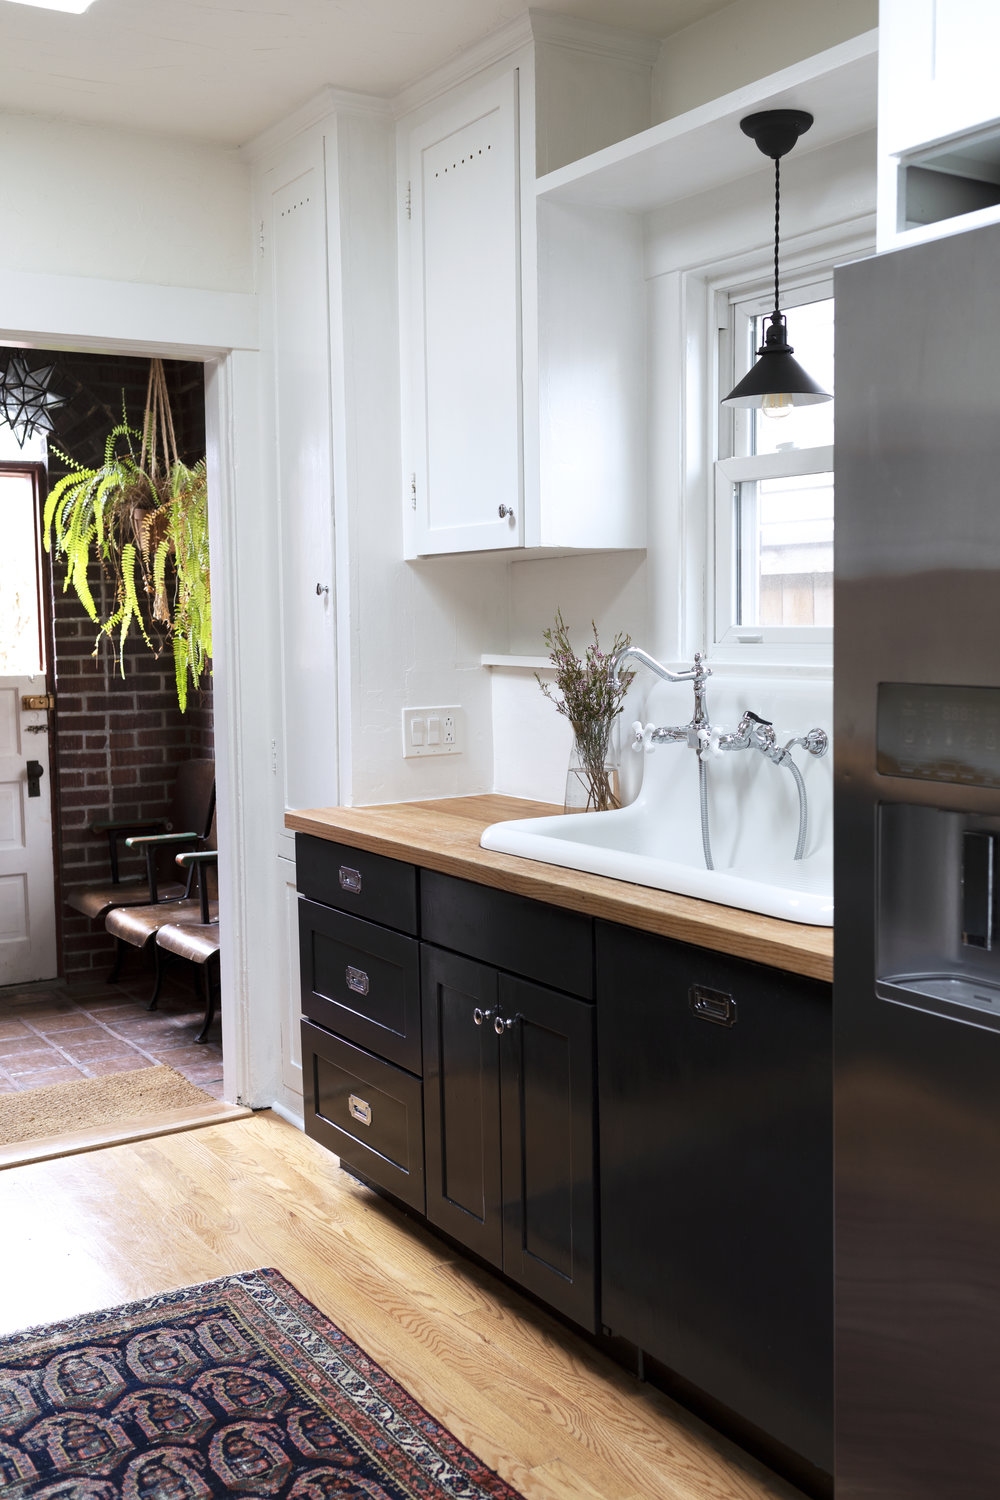 The Grit and Polish - Dexter Kitchen Faucet + Cabinet + Rug.jpg